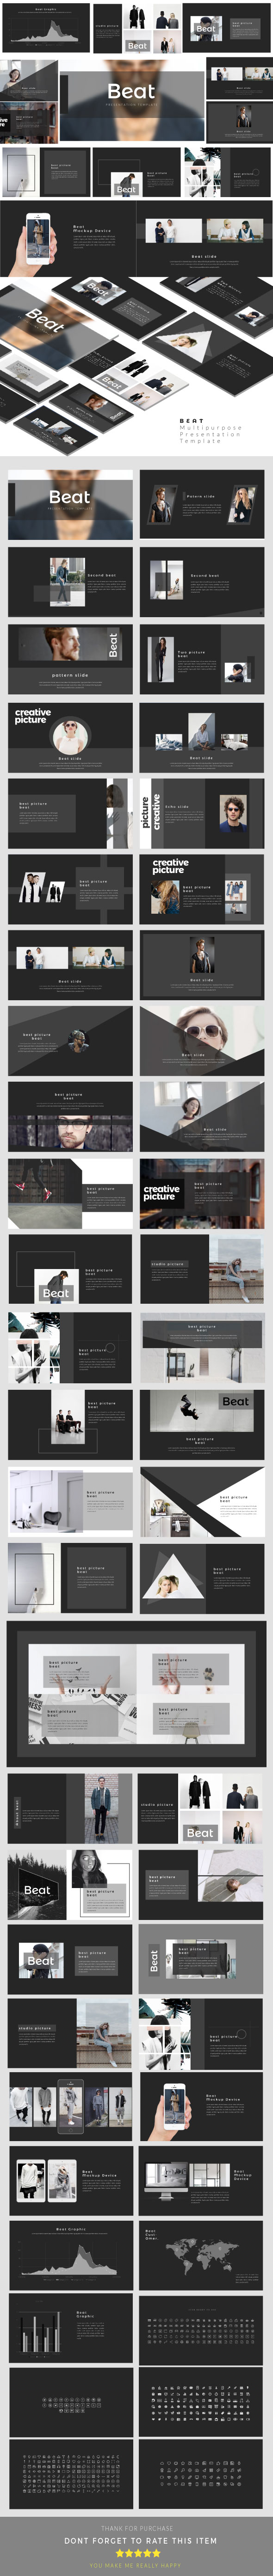 Beat - Multipurpose Presentation Templates - Business PowerPoint Templates